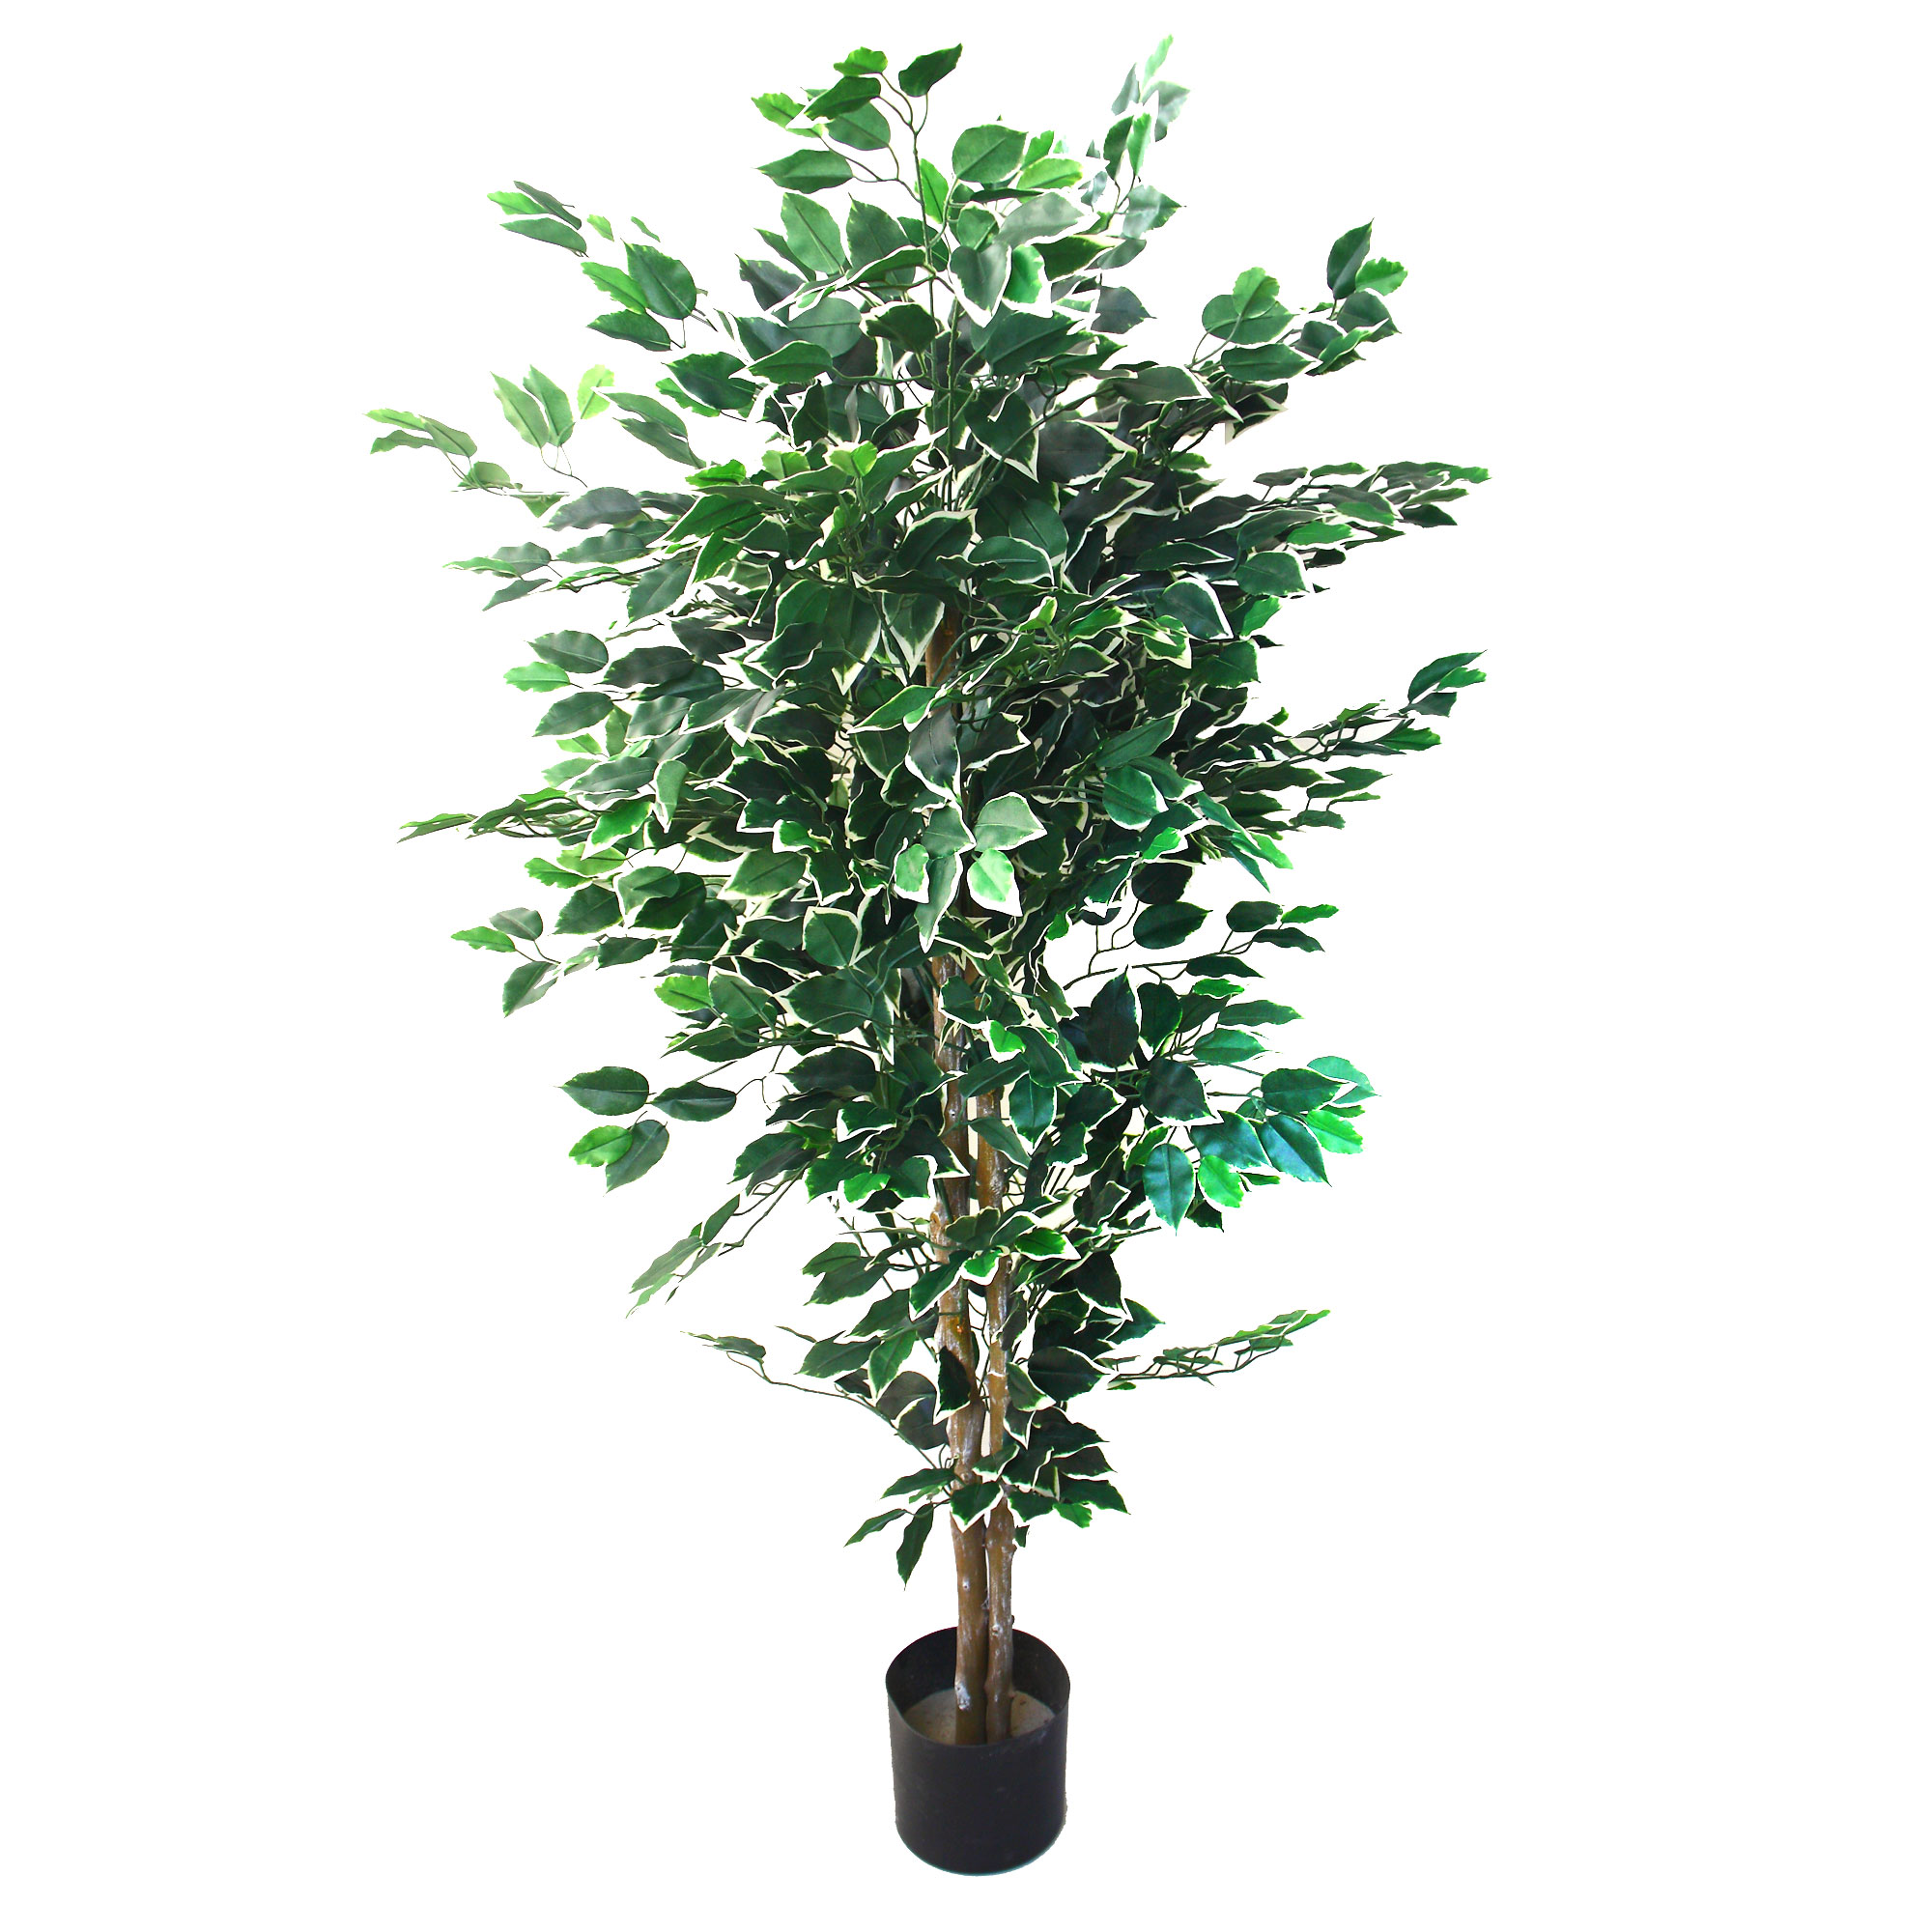 Pure Garden 5 Foot Ficus Artificial Tree, Green